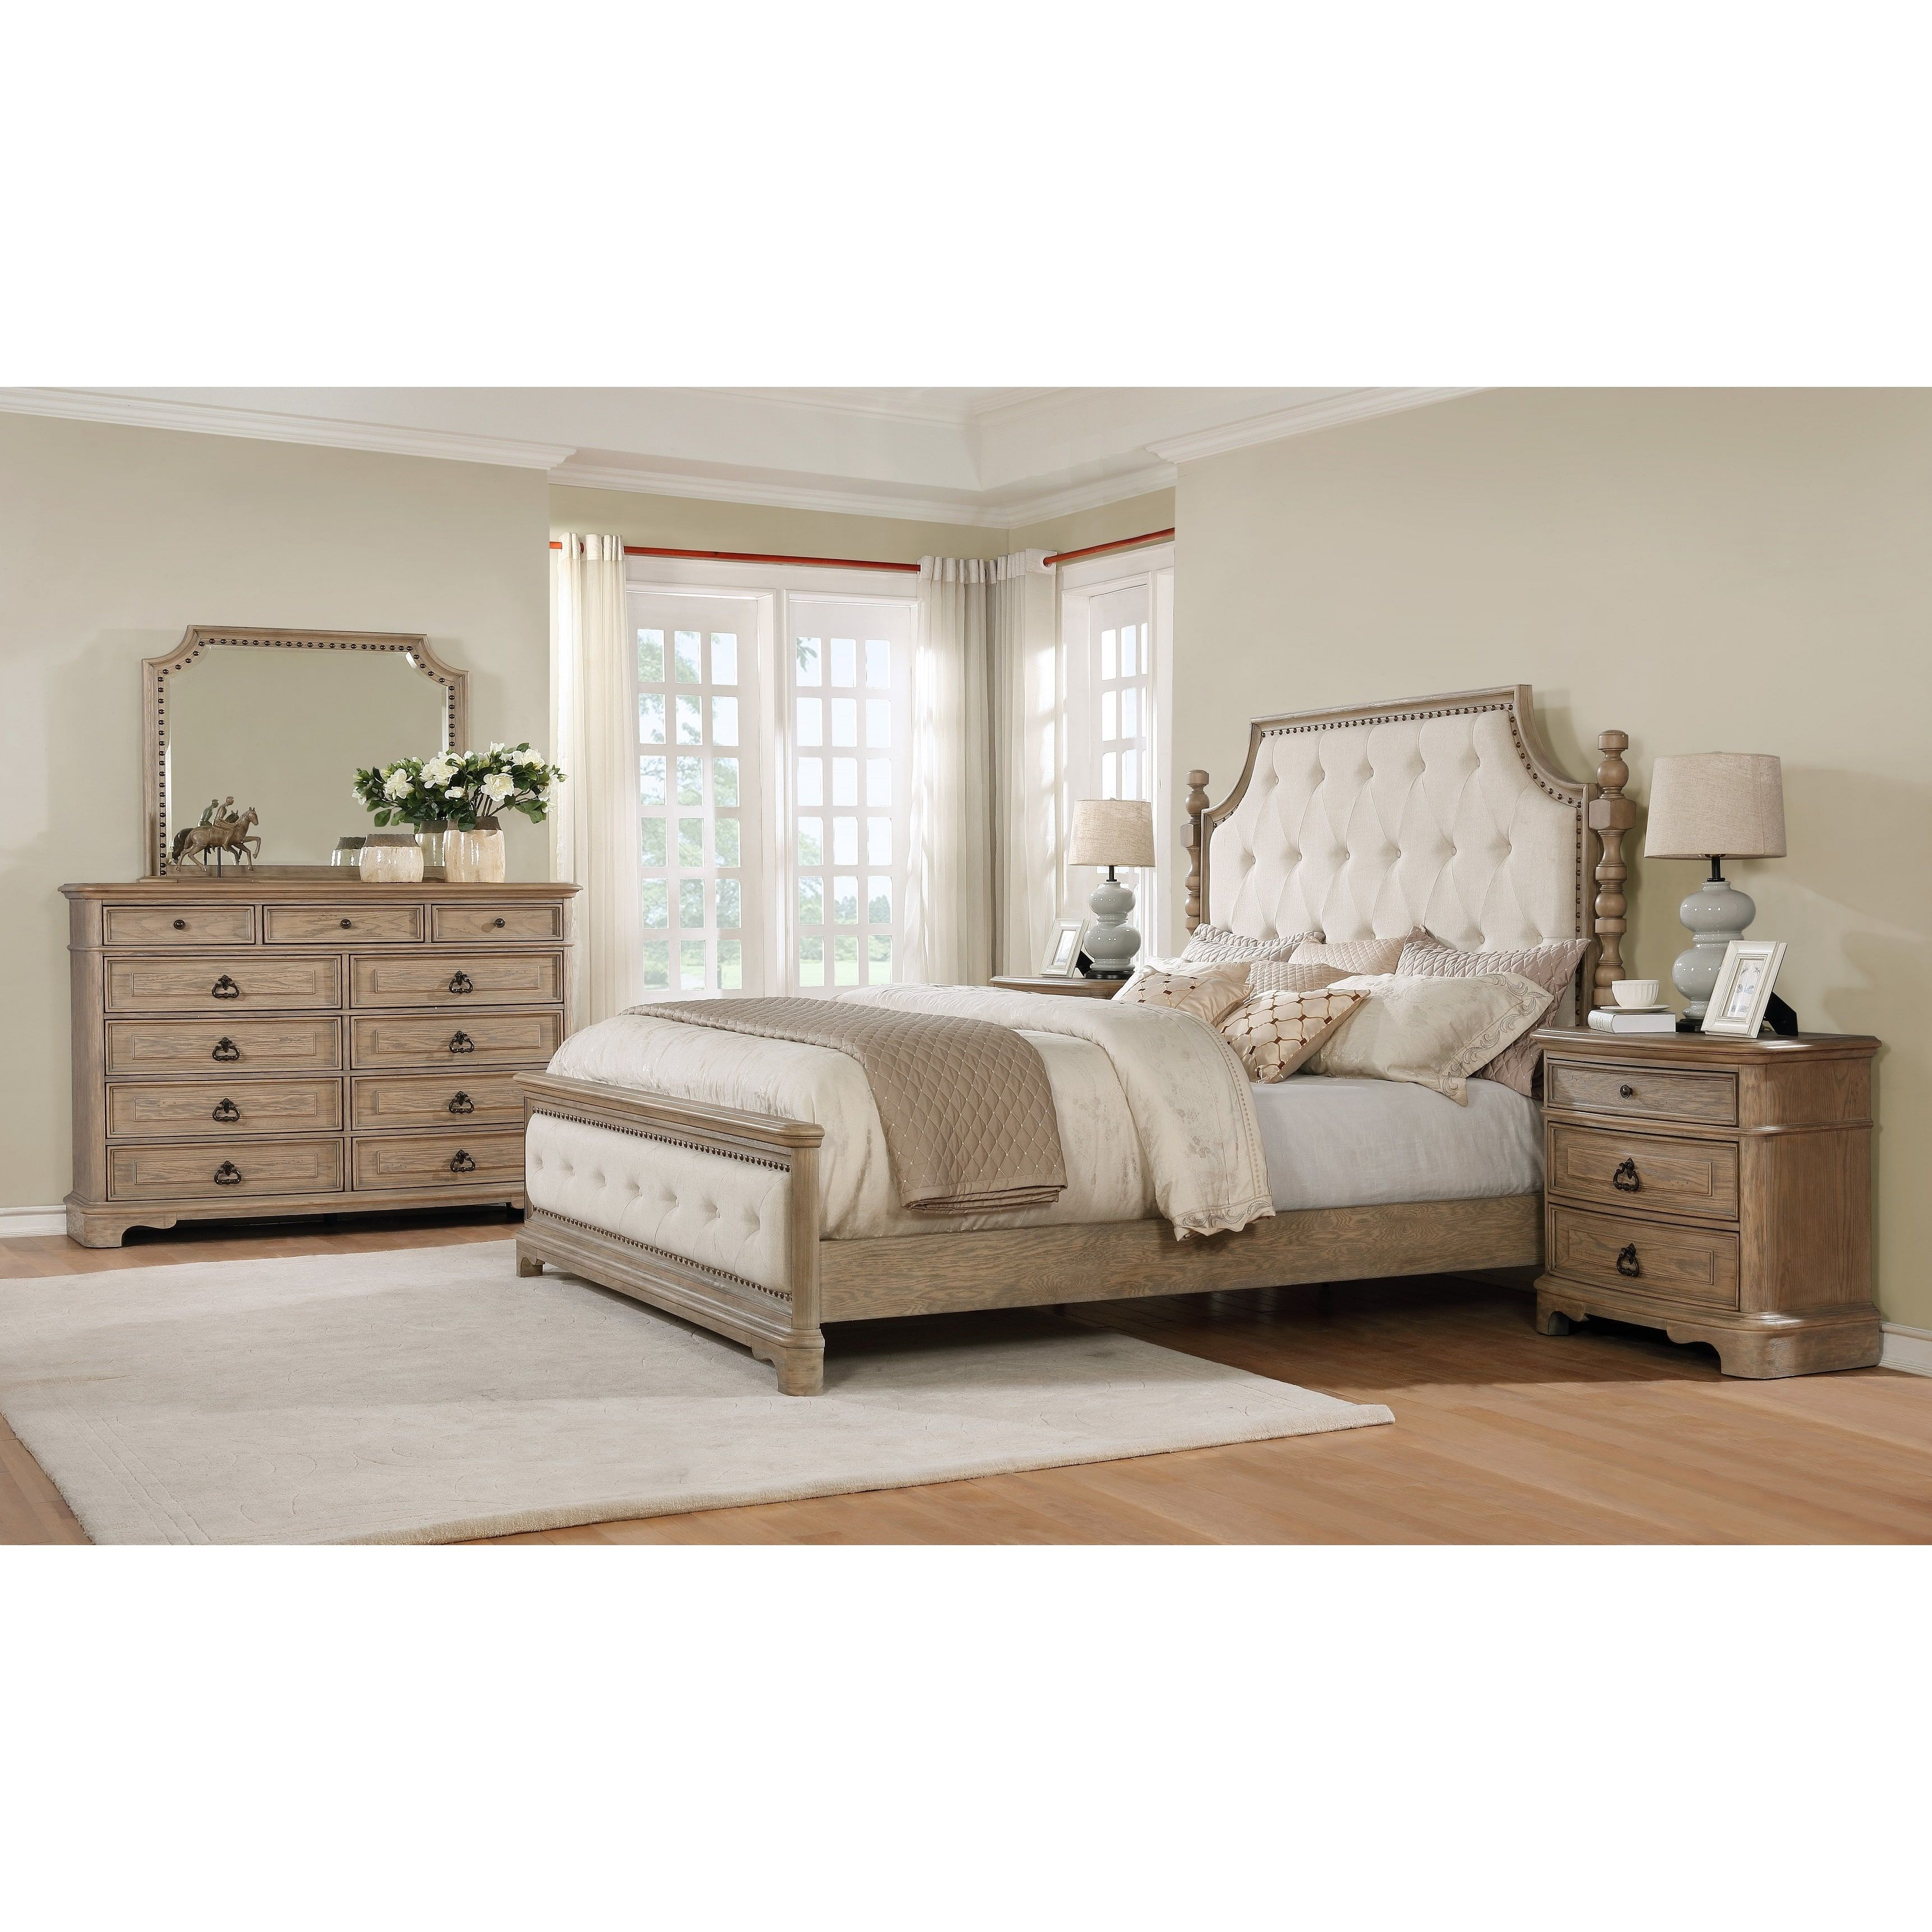 natural white luxury piece size drawers platform oak furniture king cheap modern brown lamps sets bed a polished table bedroom wood